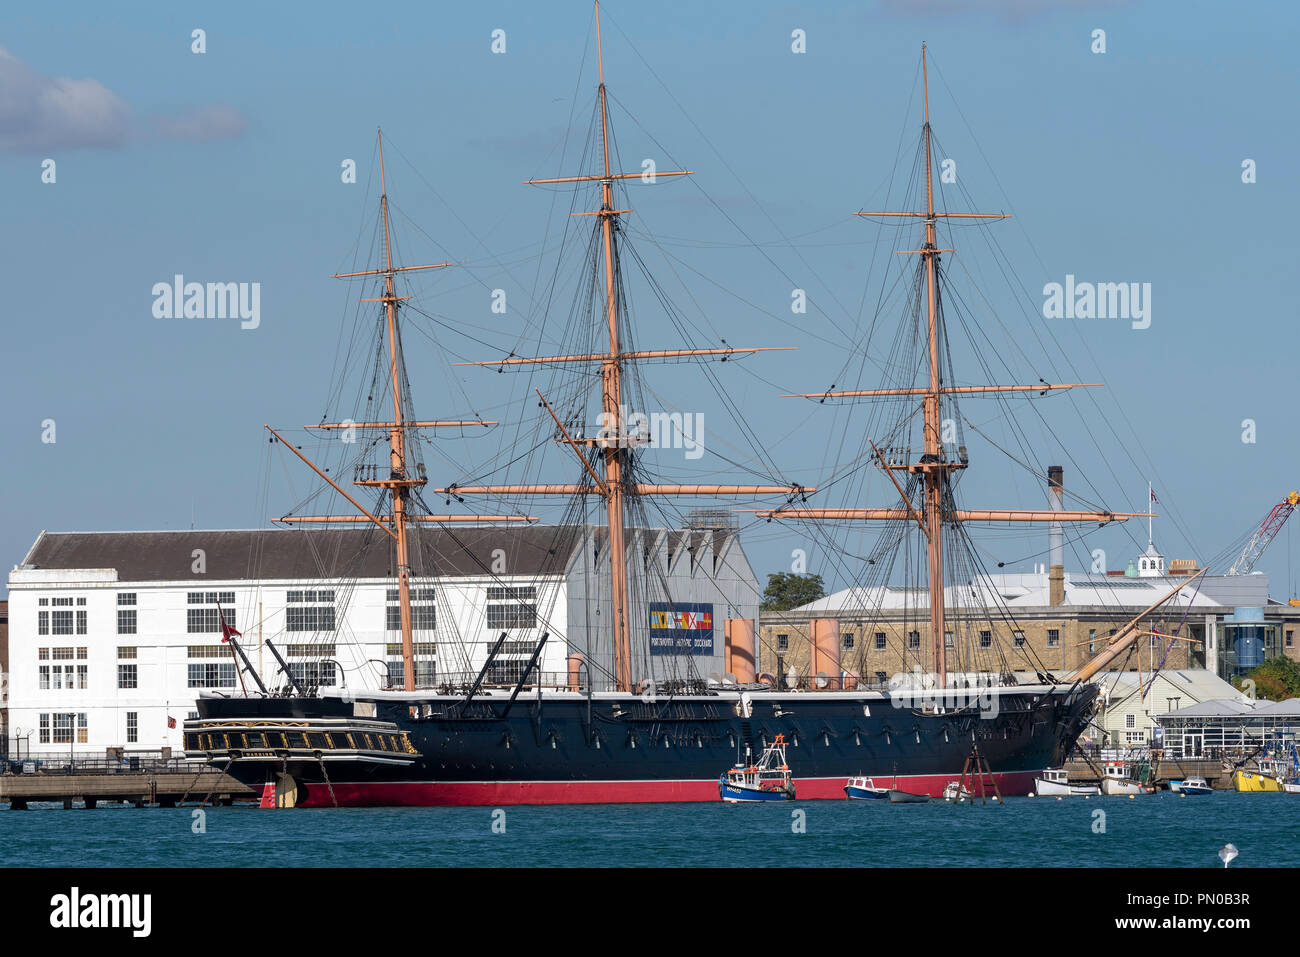 HMS Warrior an iron hulled aroured frigate museum ship on the quay in Portsmouth, England UK Stock Photo